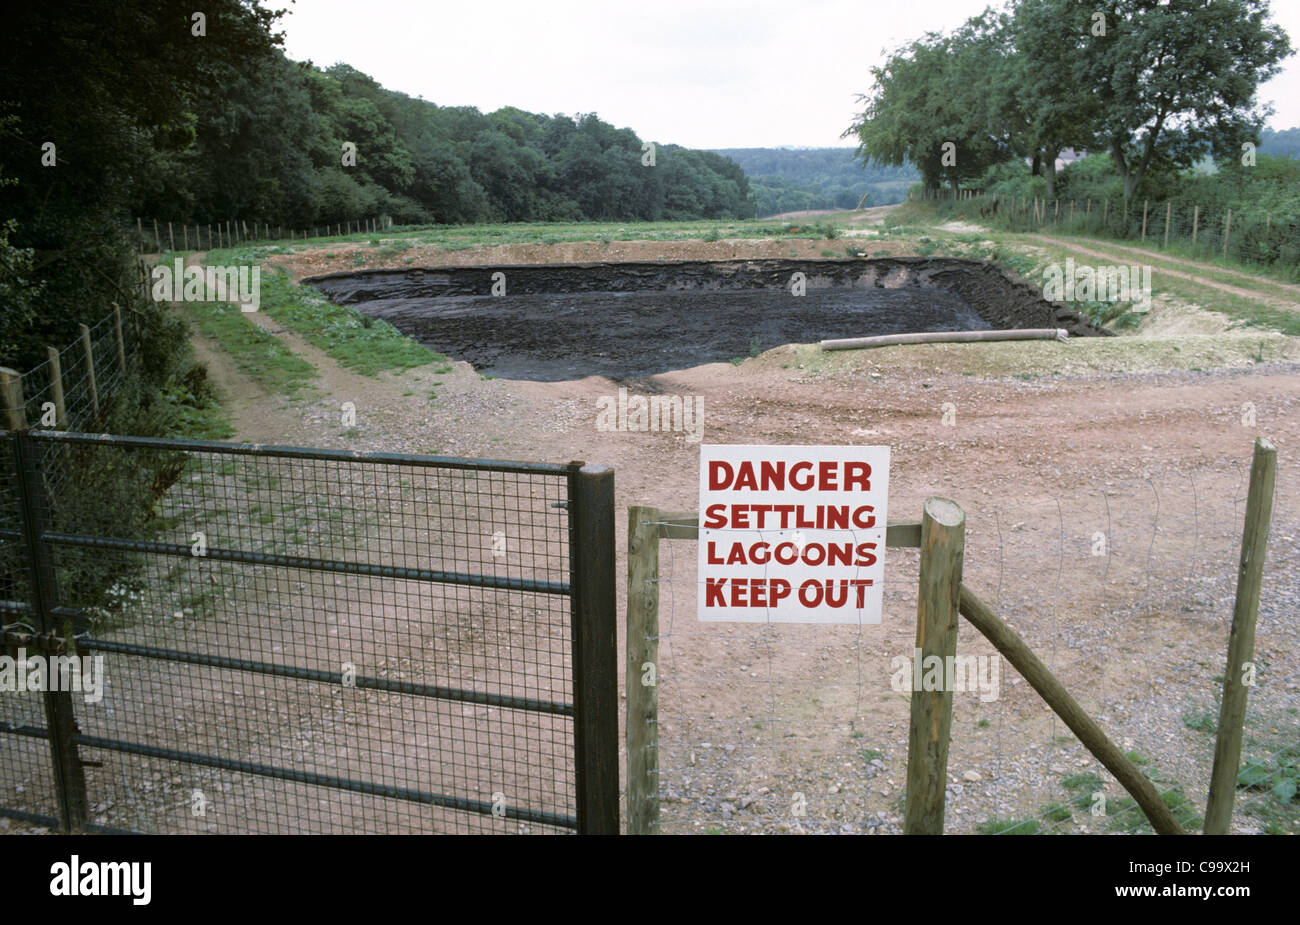 A settling lagoon for slurry to prevent pollution but securely fenced - Stock Image